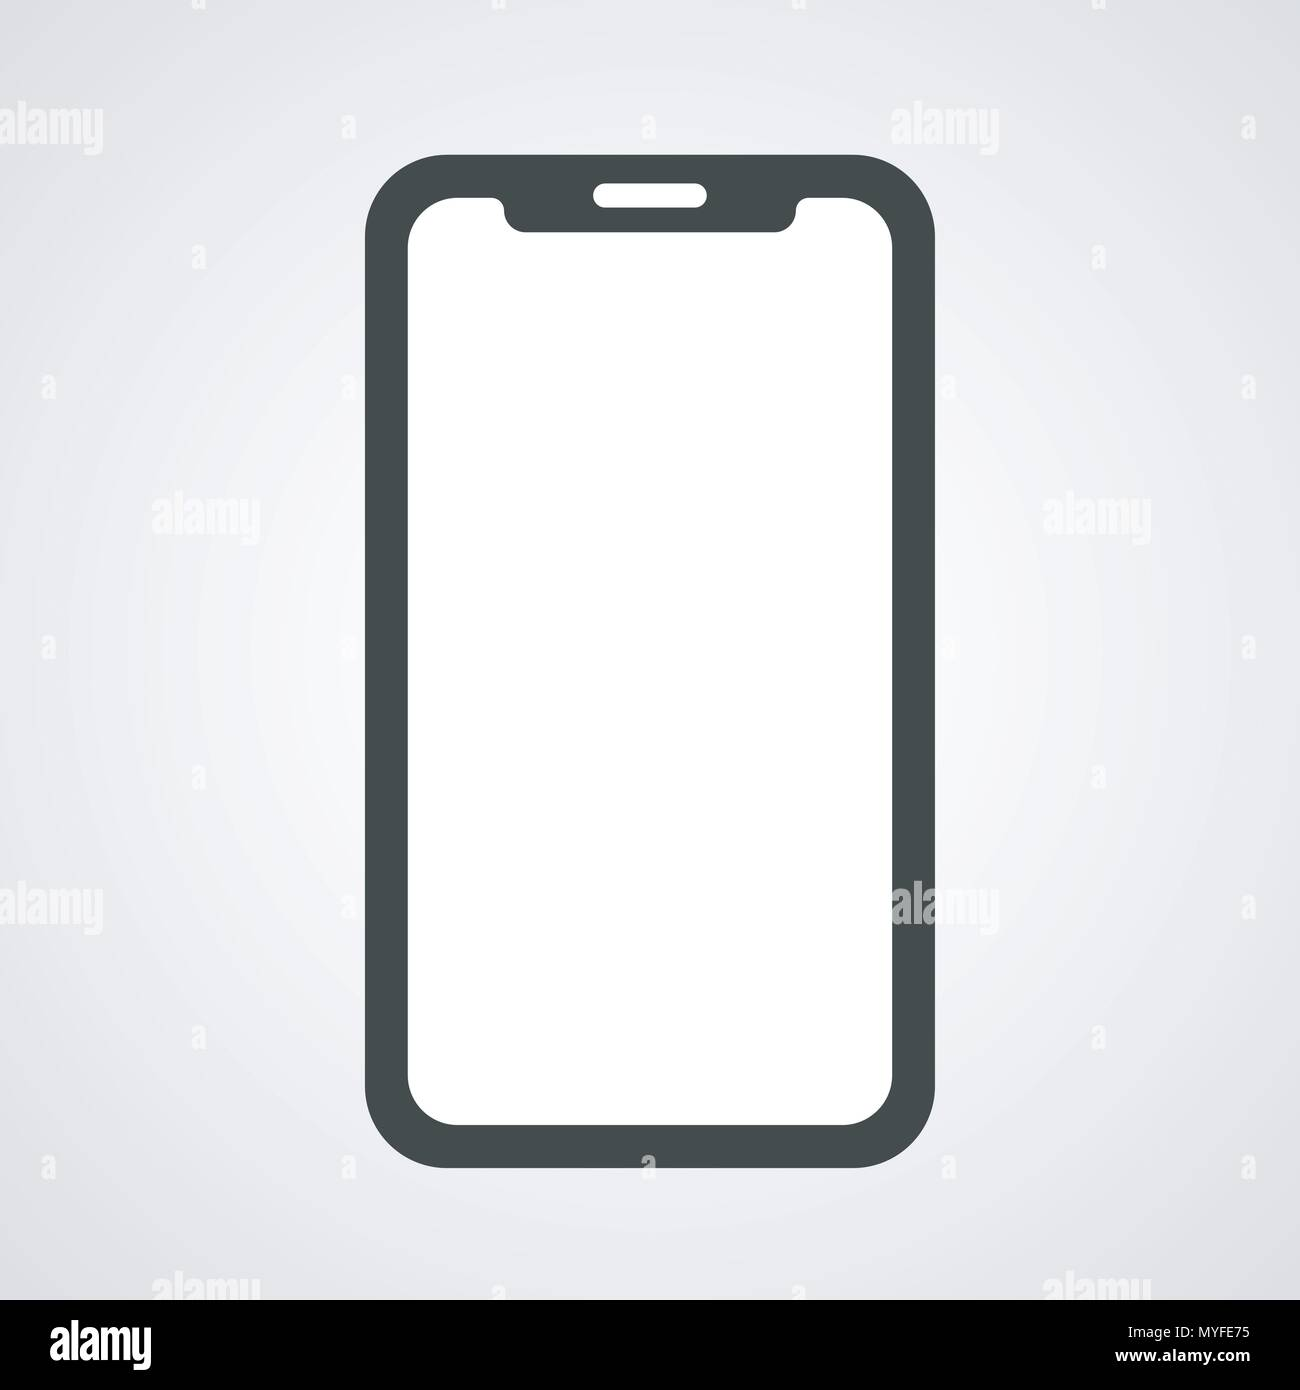 Vector design of phone blank template stock vector art vector design of phone blank template maxwellsz